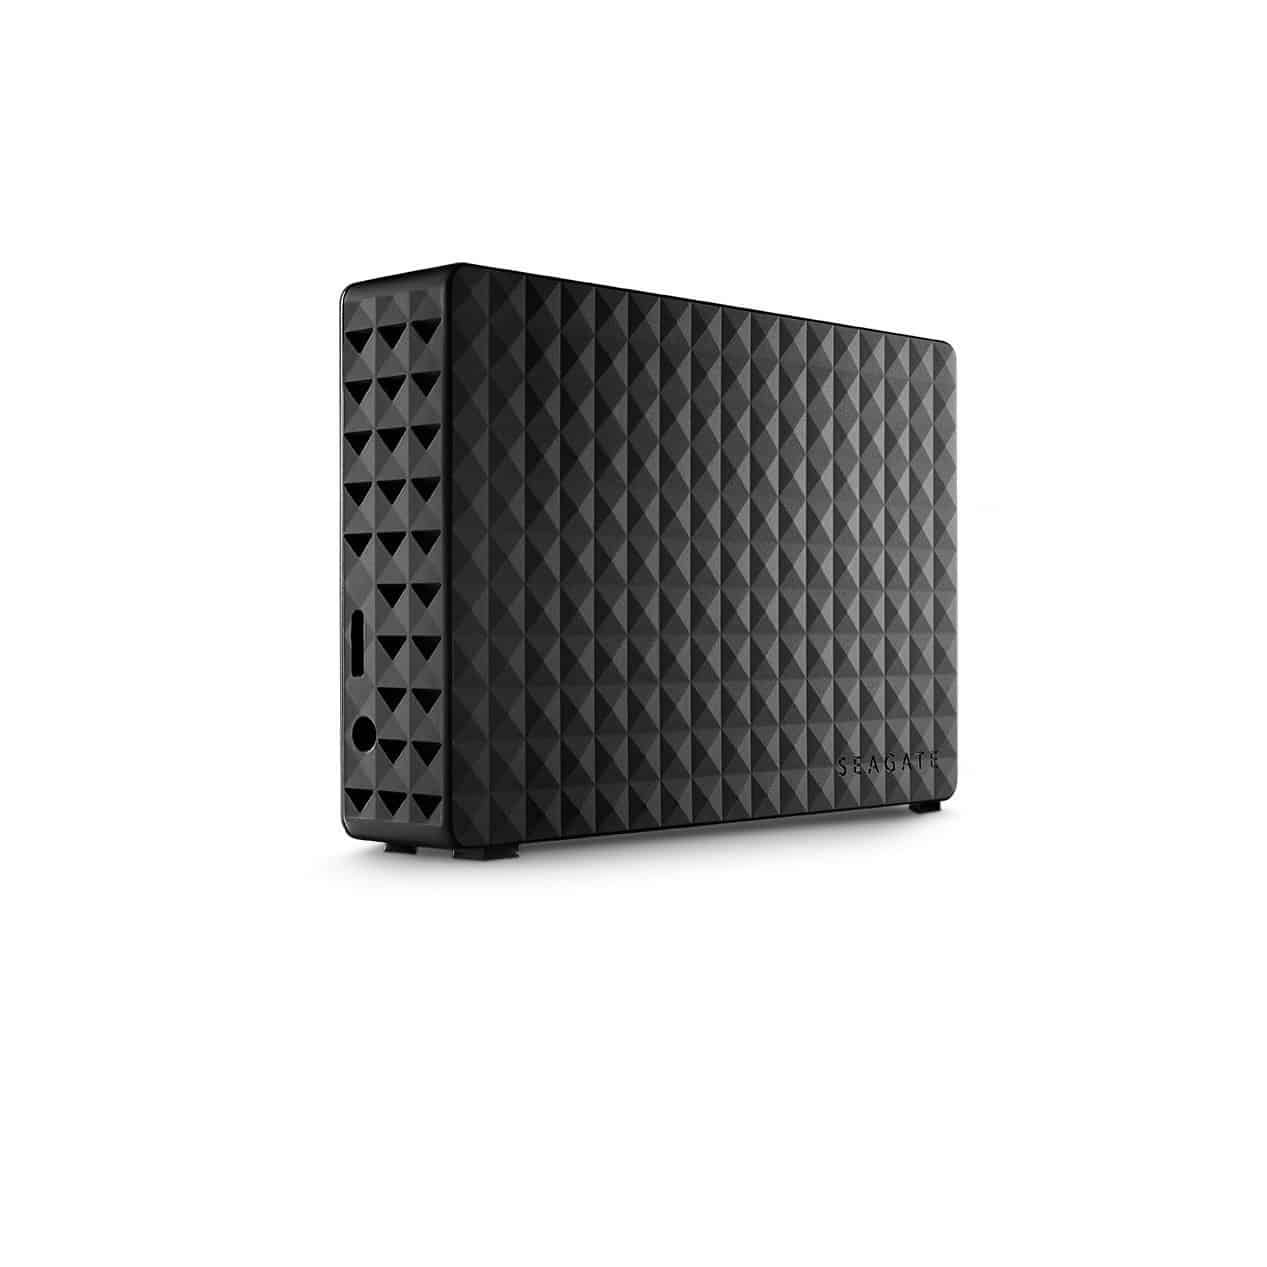 Seagate Expansion 5TB Drive